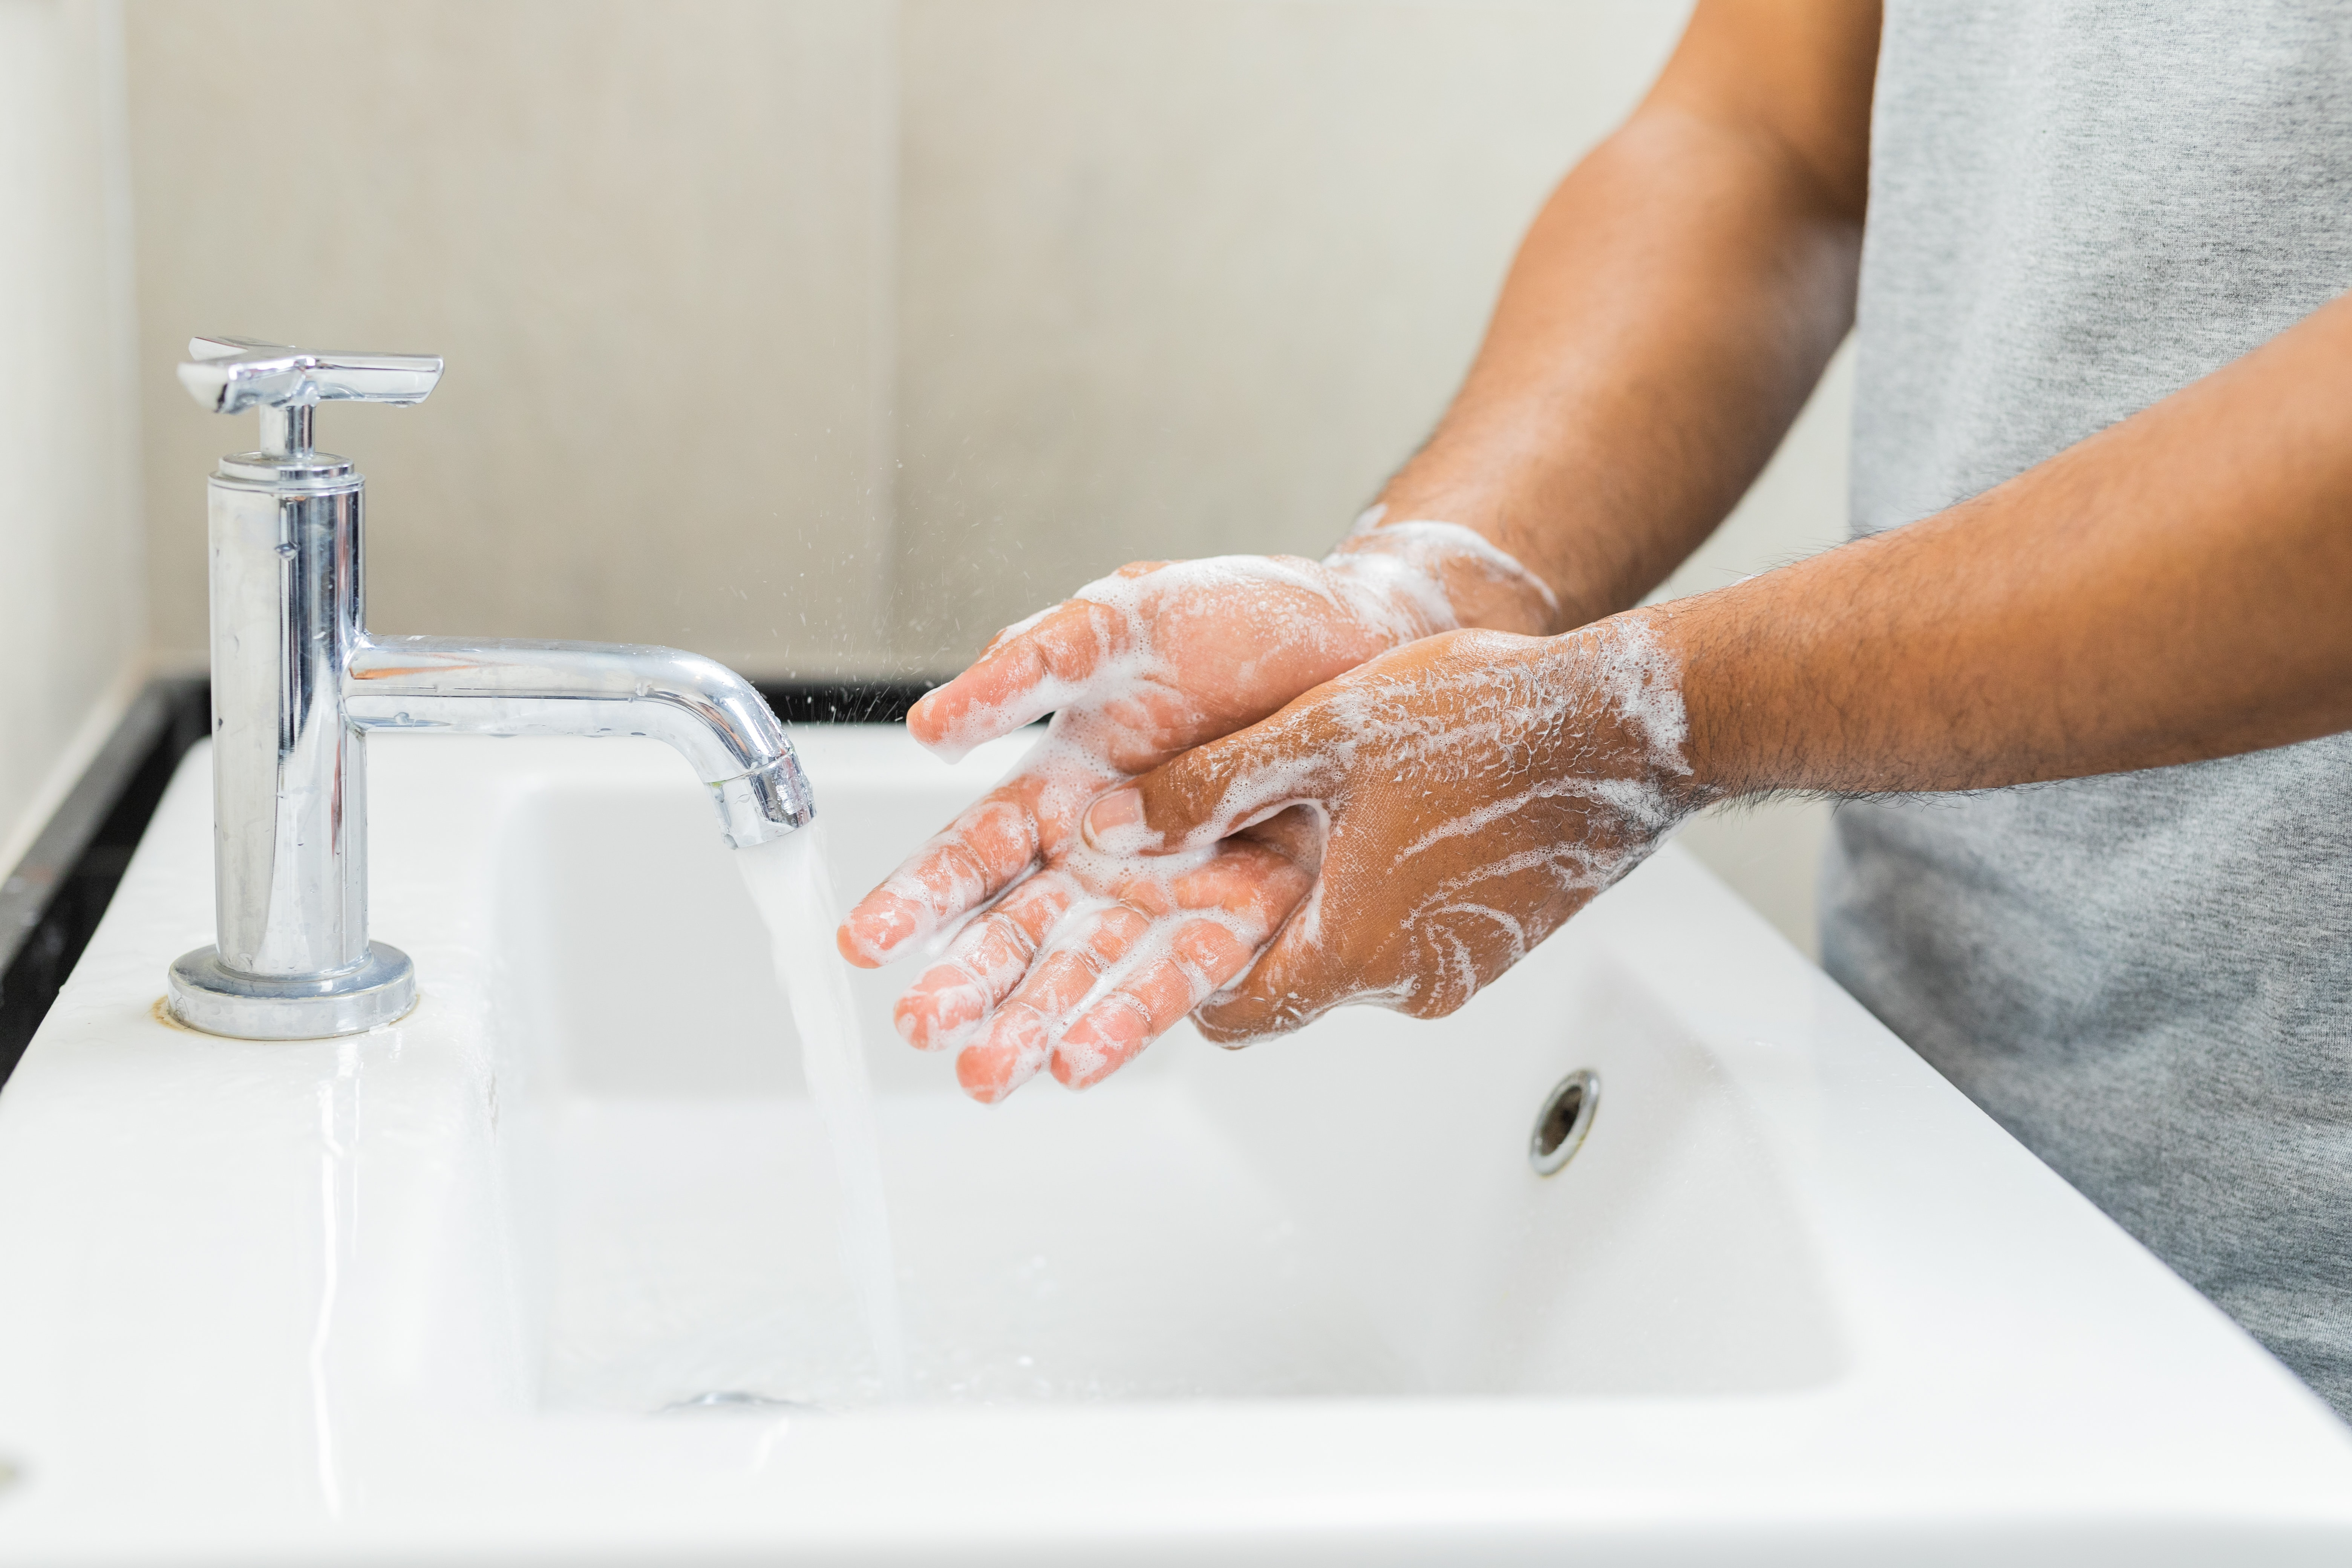 Good handwashing practices: Protect yourself from coronavirus infection